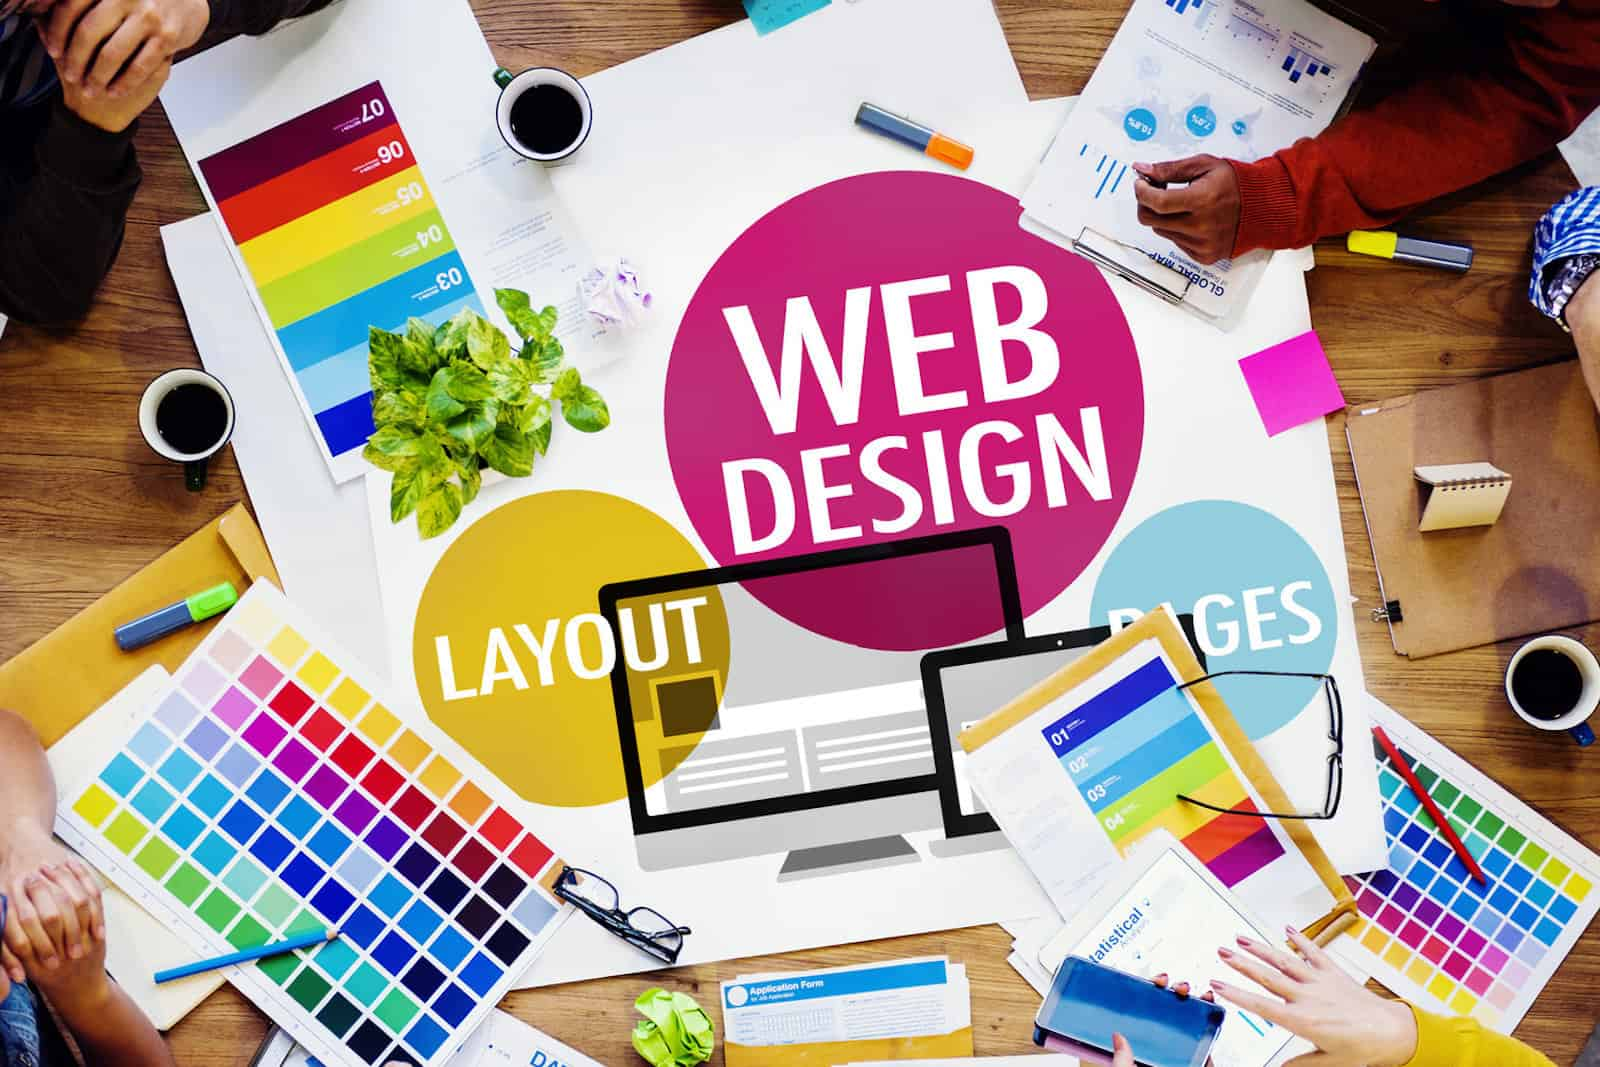 How Bad Website Design Can Hurt Your Business Designs By Dave O